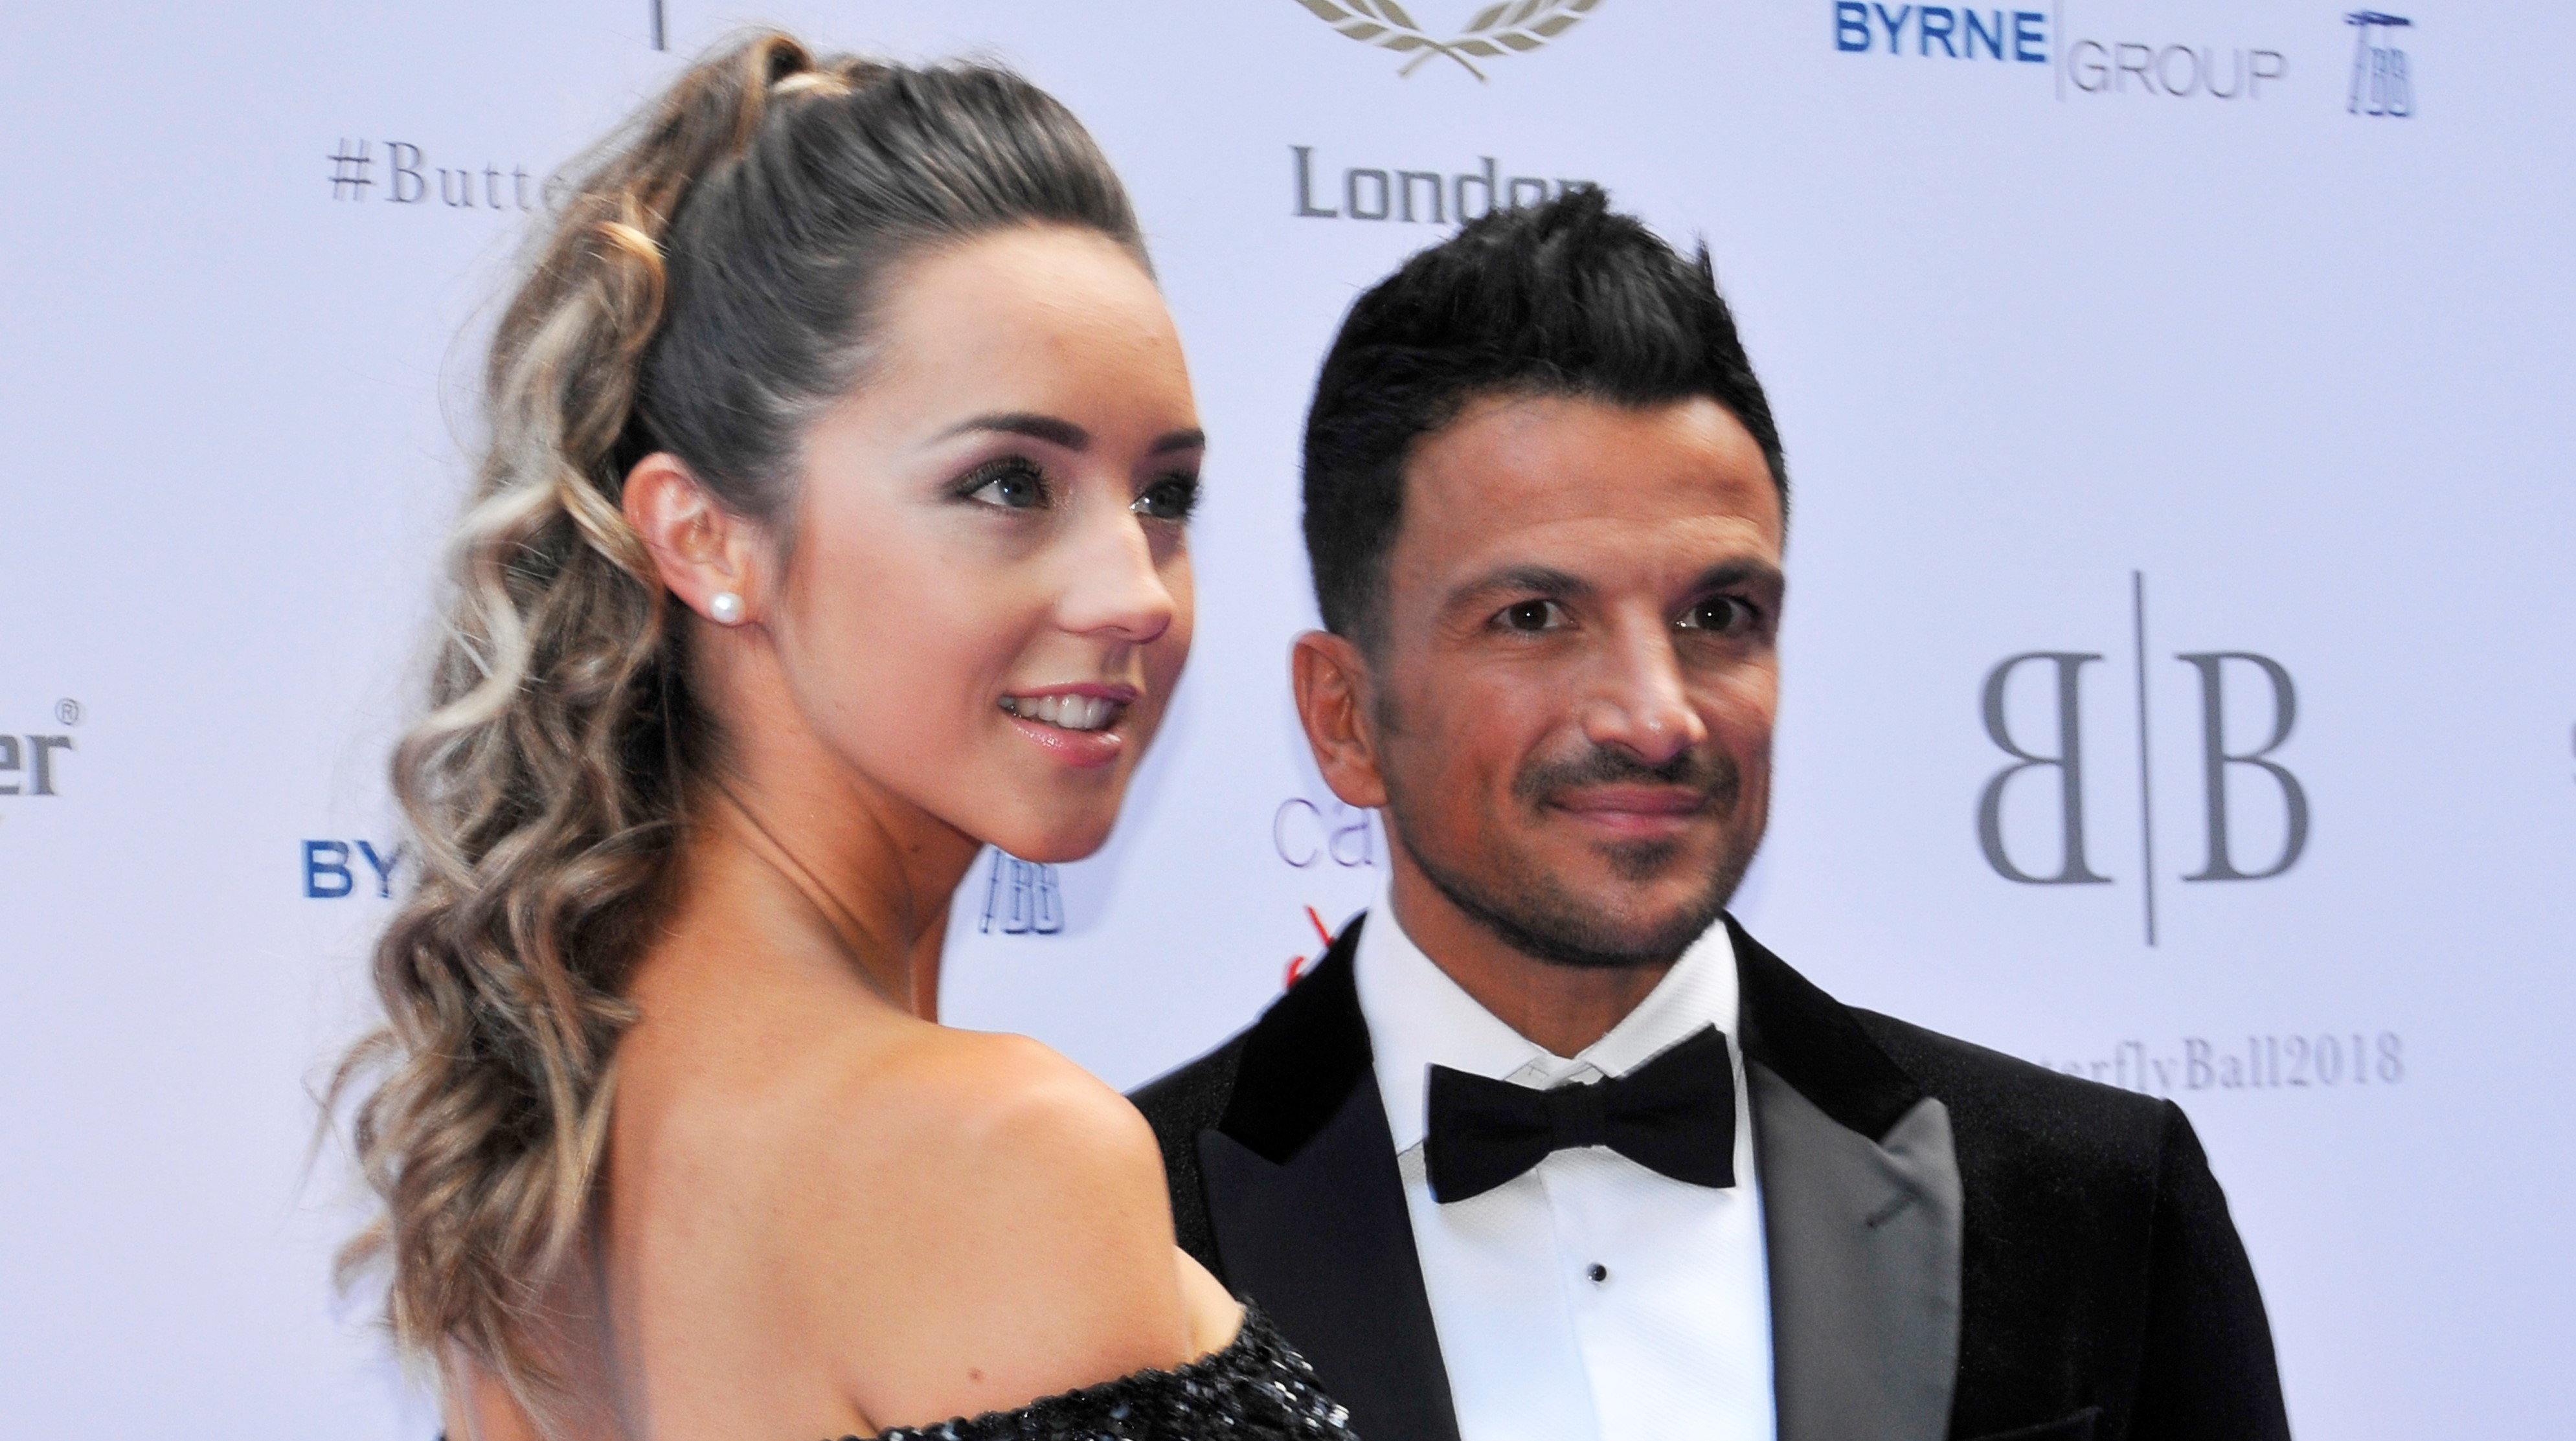 Peter Andre shares sweet photo of Amelia and Theo on family holiday